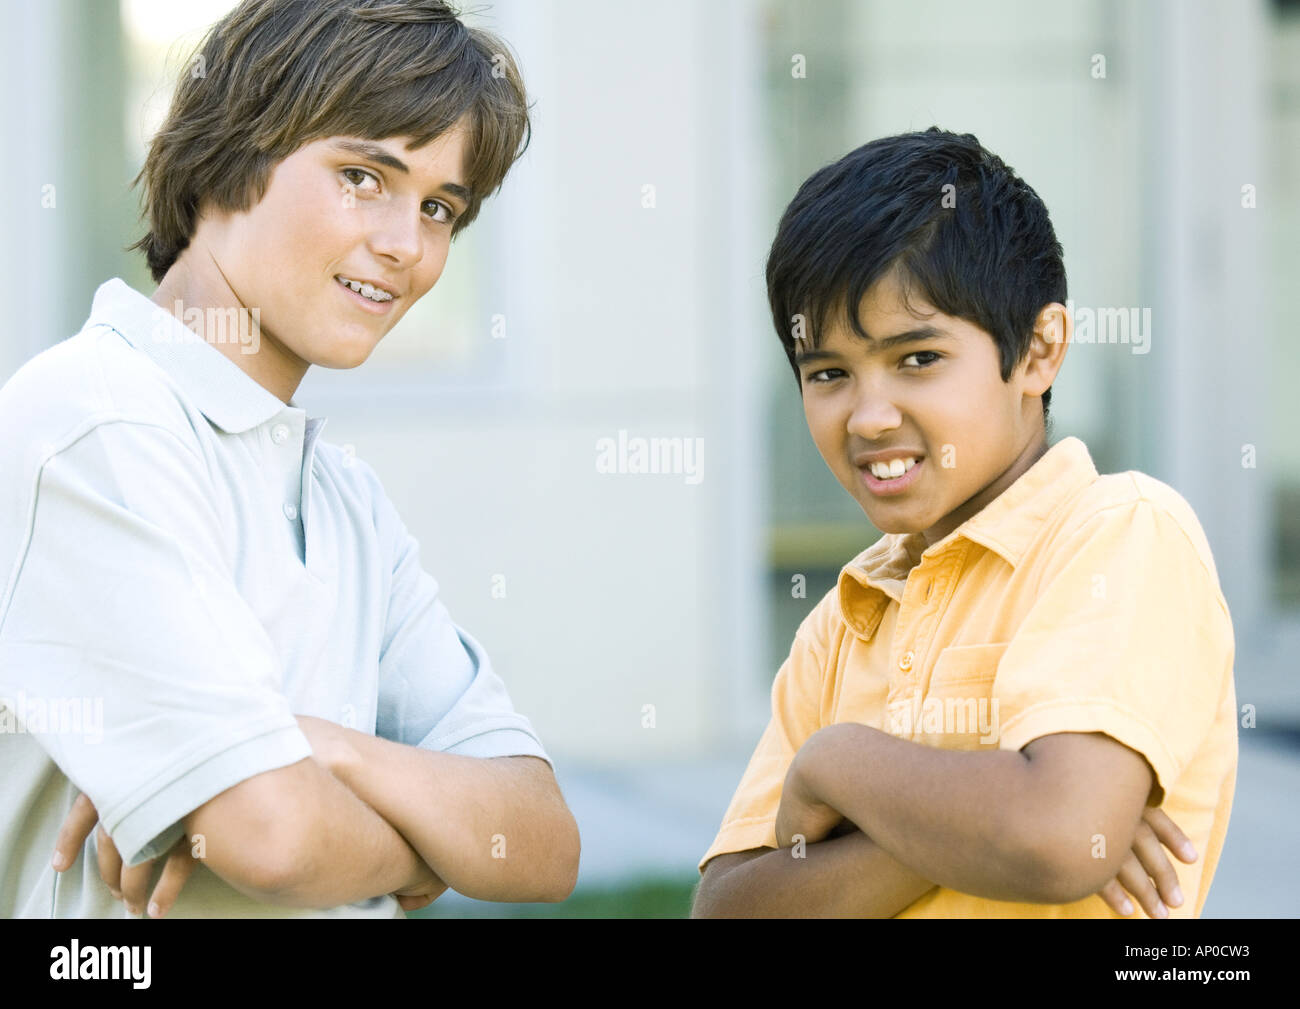 Preteen boys with arms crossed - Stock Image